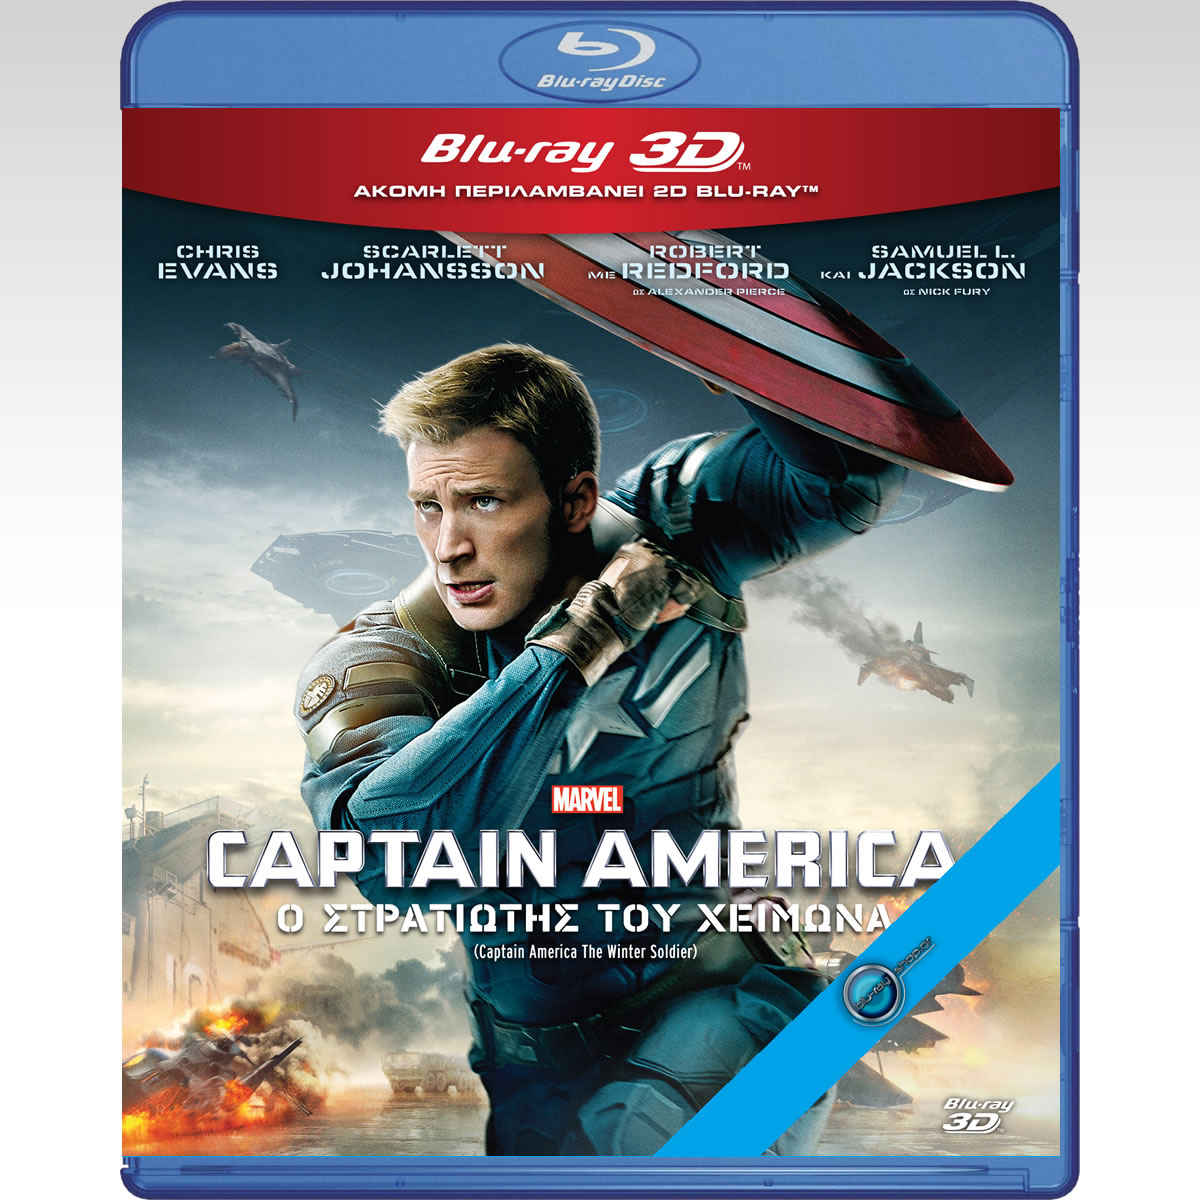 CAPTAIN AMERICA 2: THE WINTER SOLDIER 3D - CAPTAIN AMERICA 2: � ���������� ��� ������� 3D (BLU-RAY 3D + BLU-RAY)